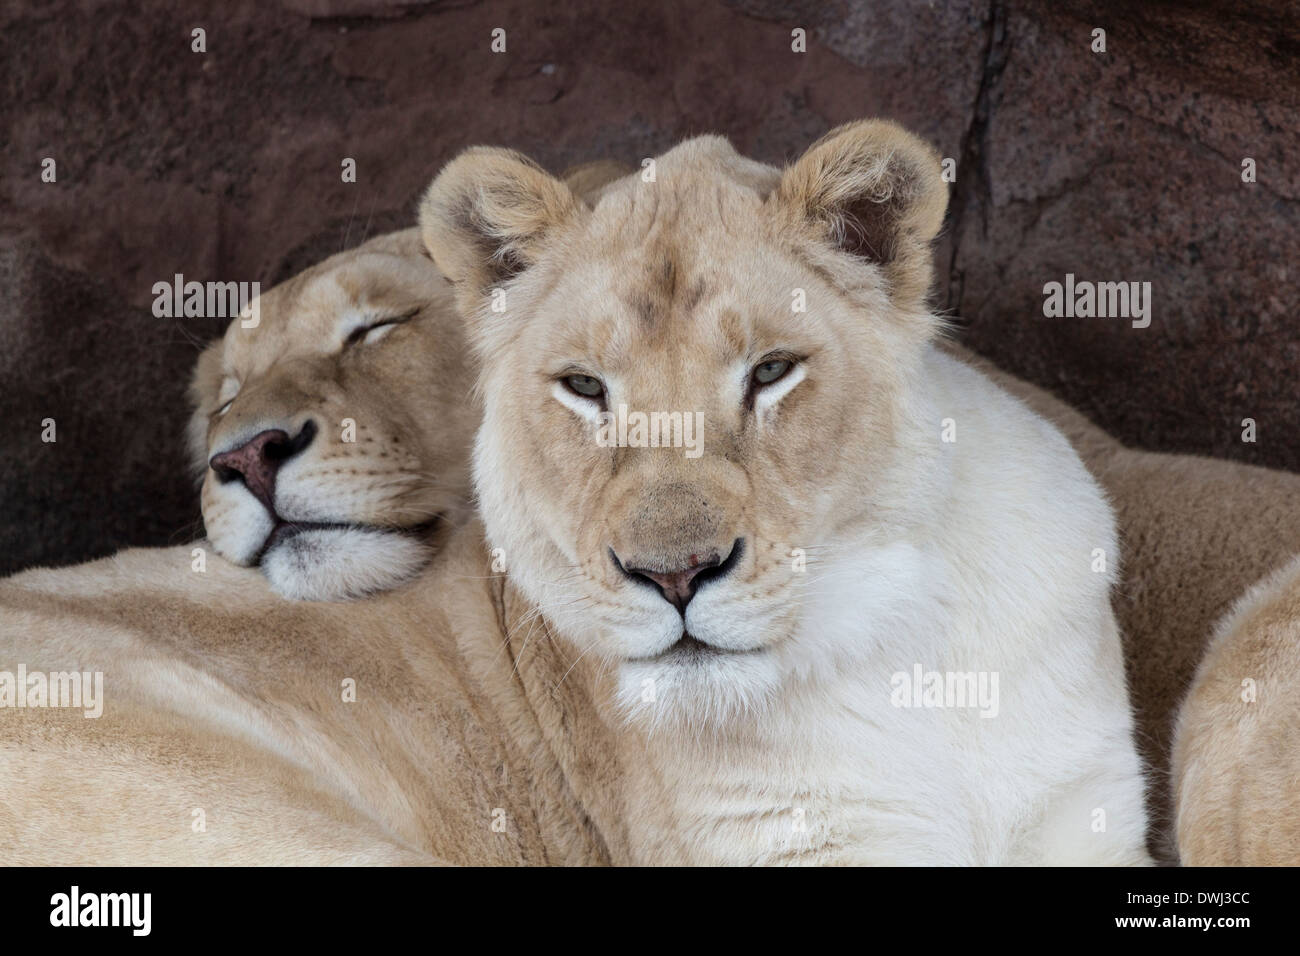 two-white-lionesses-at-the-toronto-zoo-D